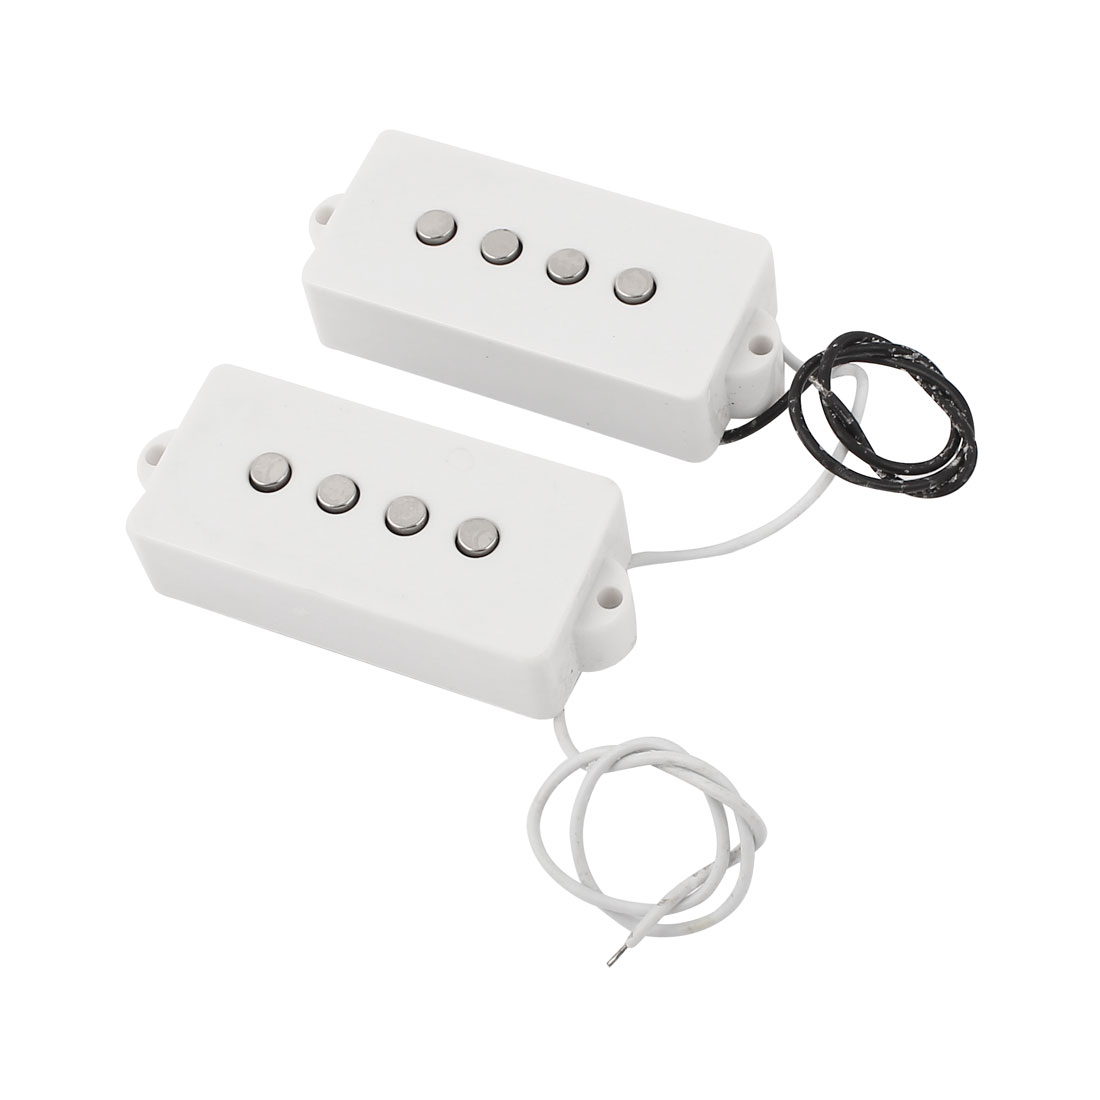 2pcs Electric 4 String Bass Neck Bridge Opened Pickups White